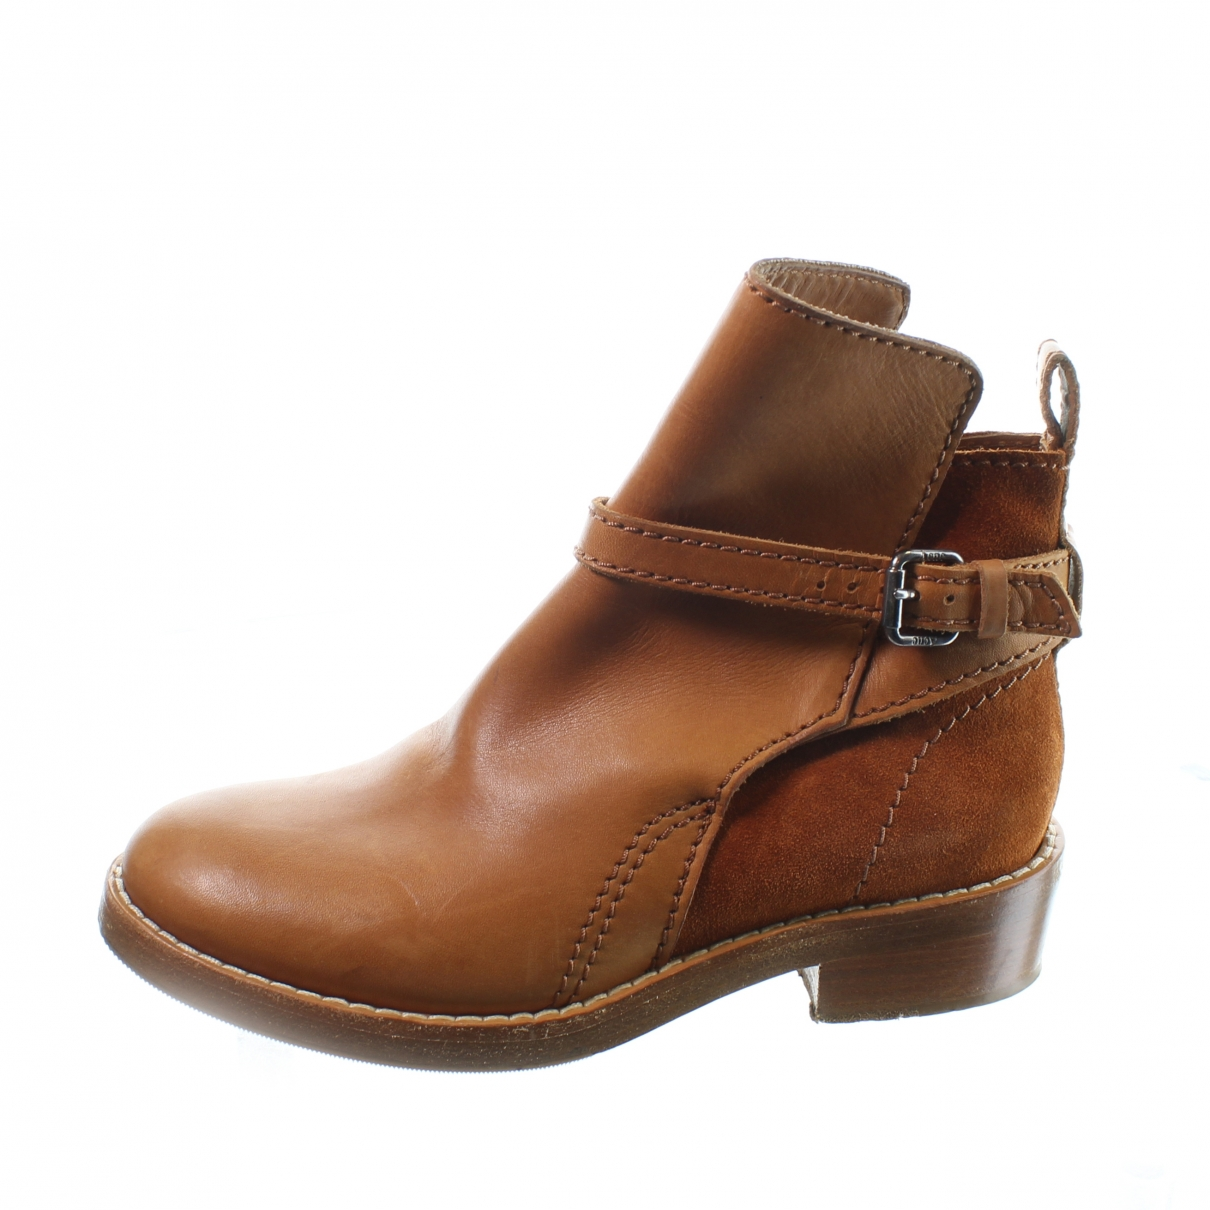 Acne Studios \N Camel Leather Ankle boots for Women 35 EU